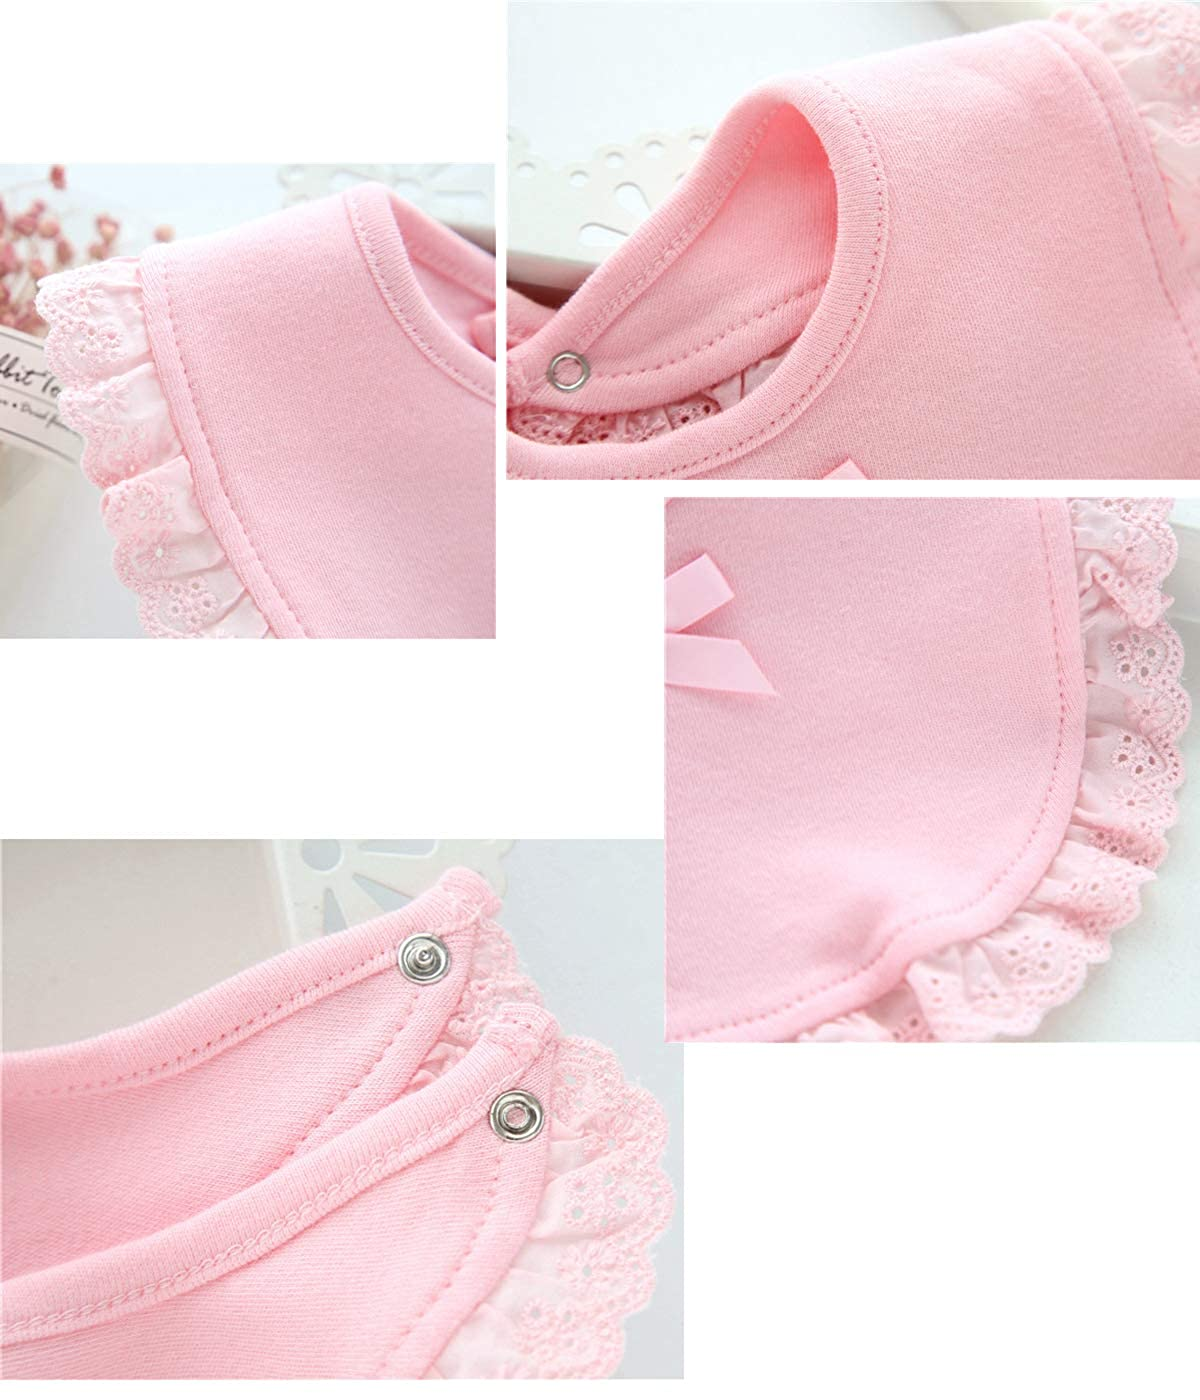 Newborn Baby Bibs With Bowknot Lace Unisex Bandana Toddler Infant Baptism Drool Bibs 0-1T